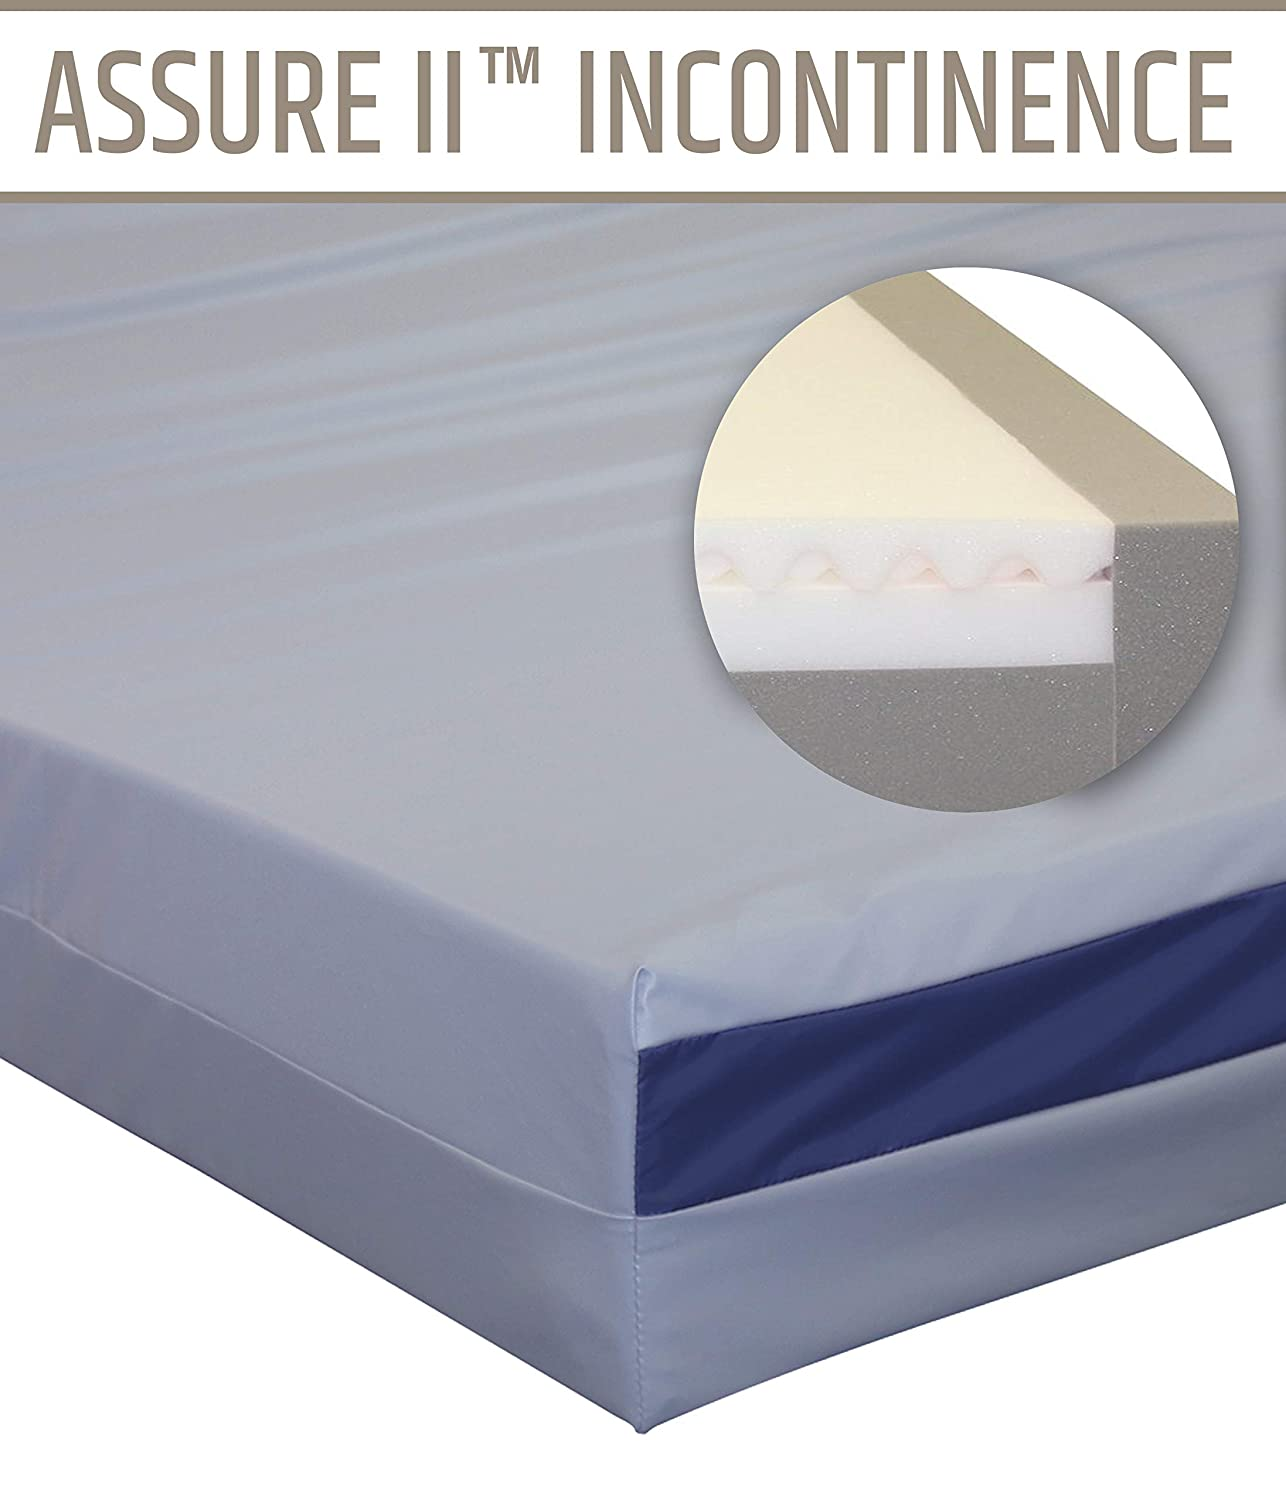 Home Care Nursing Home Therapeutic Water Proof Incontinence Mattress – Queen